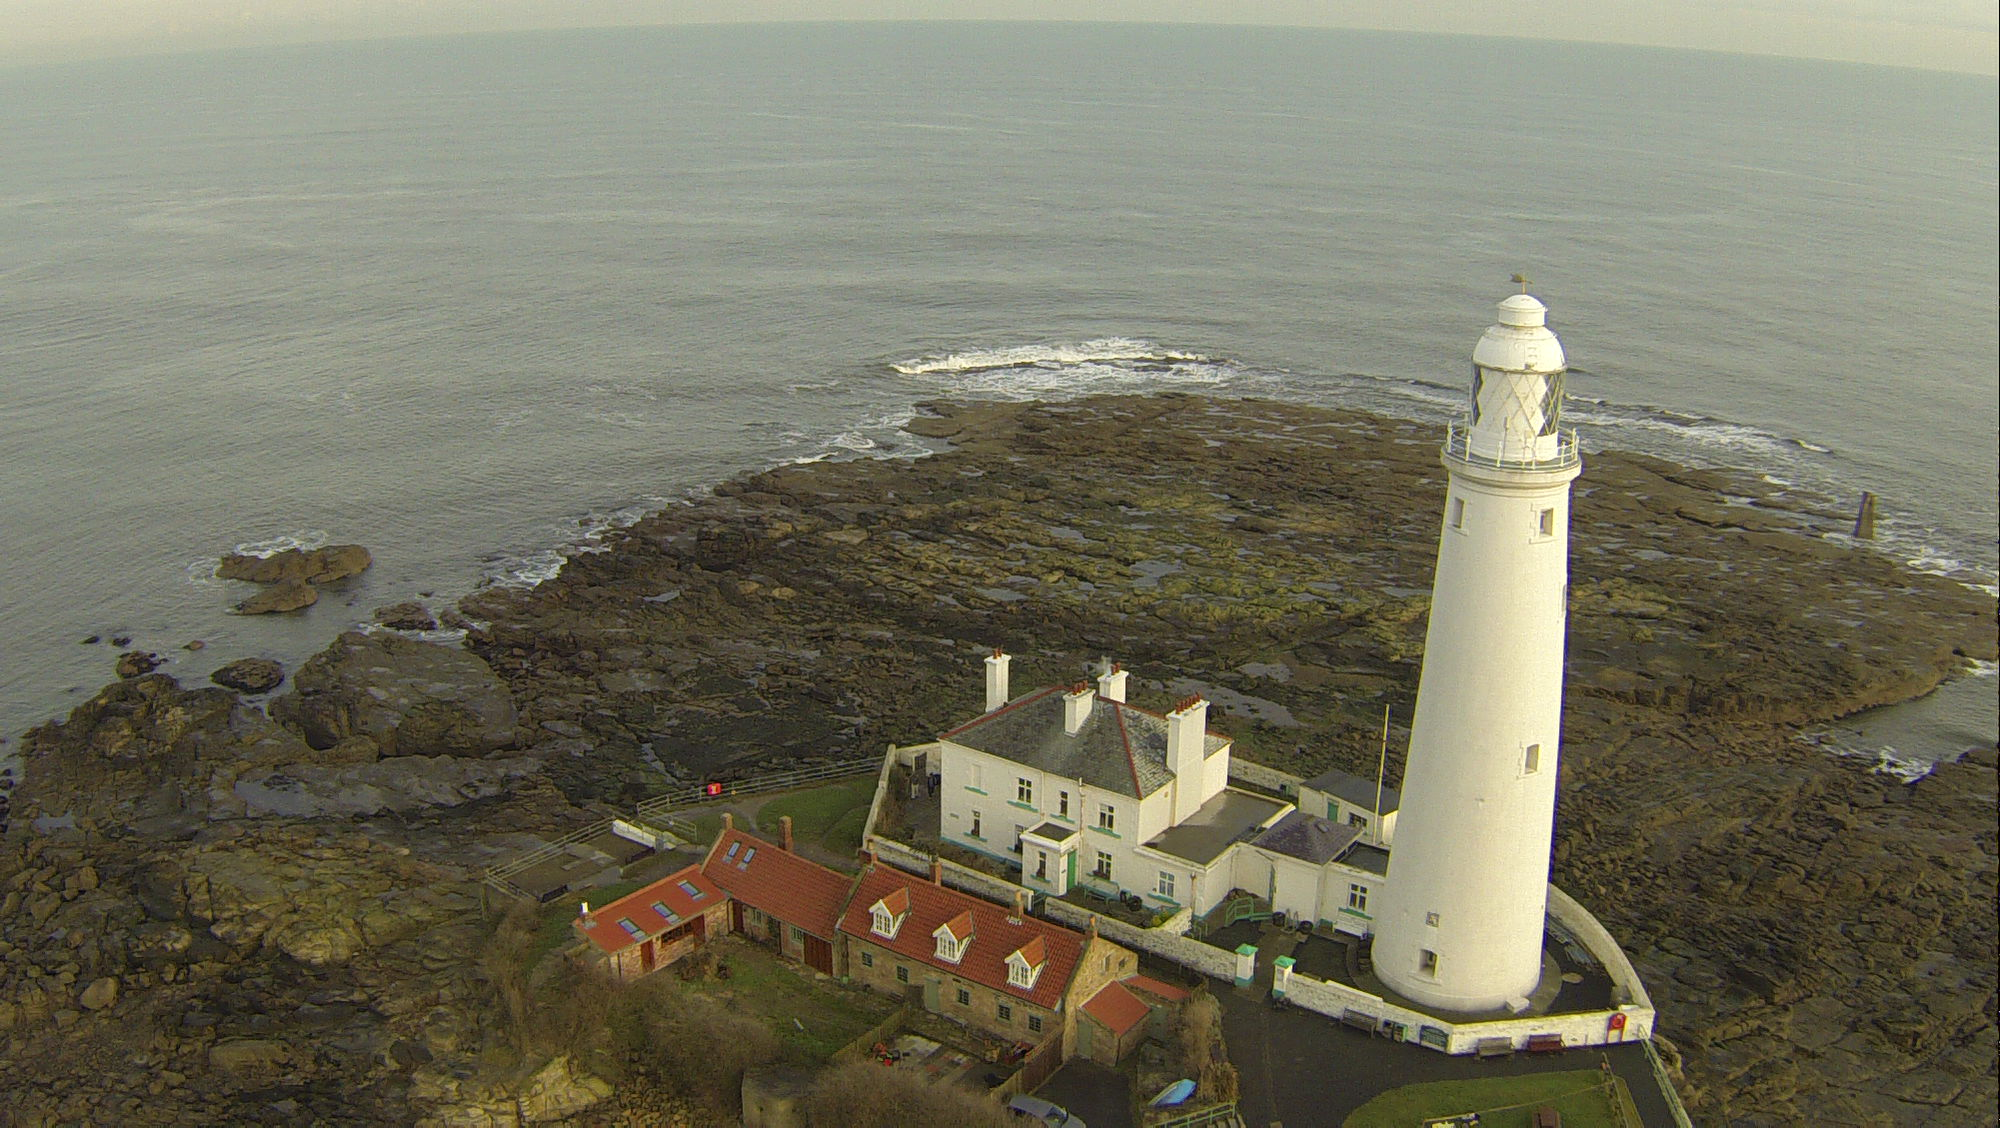 Aerial View of St Marys Lighthouse and Sea - Survey Drones